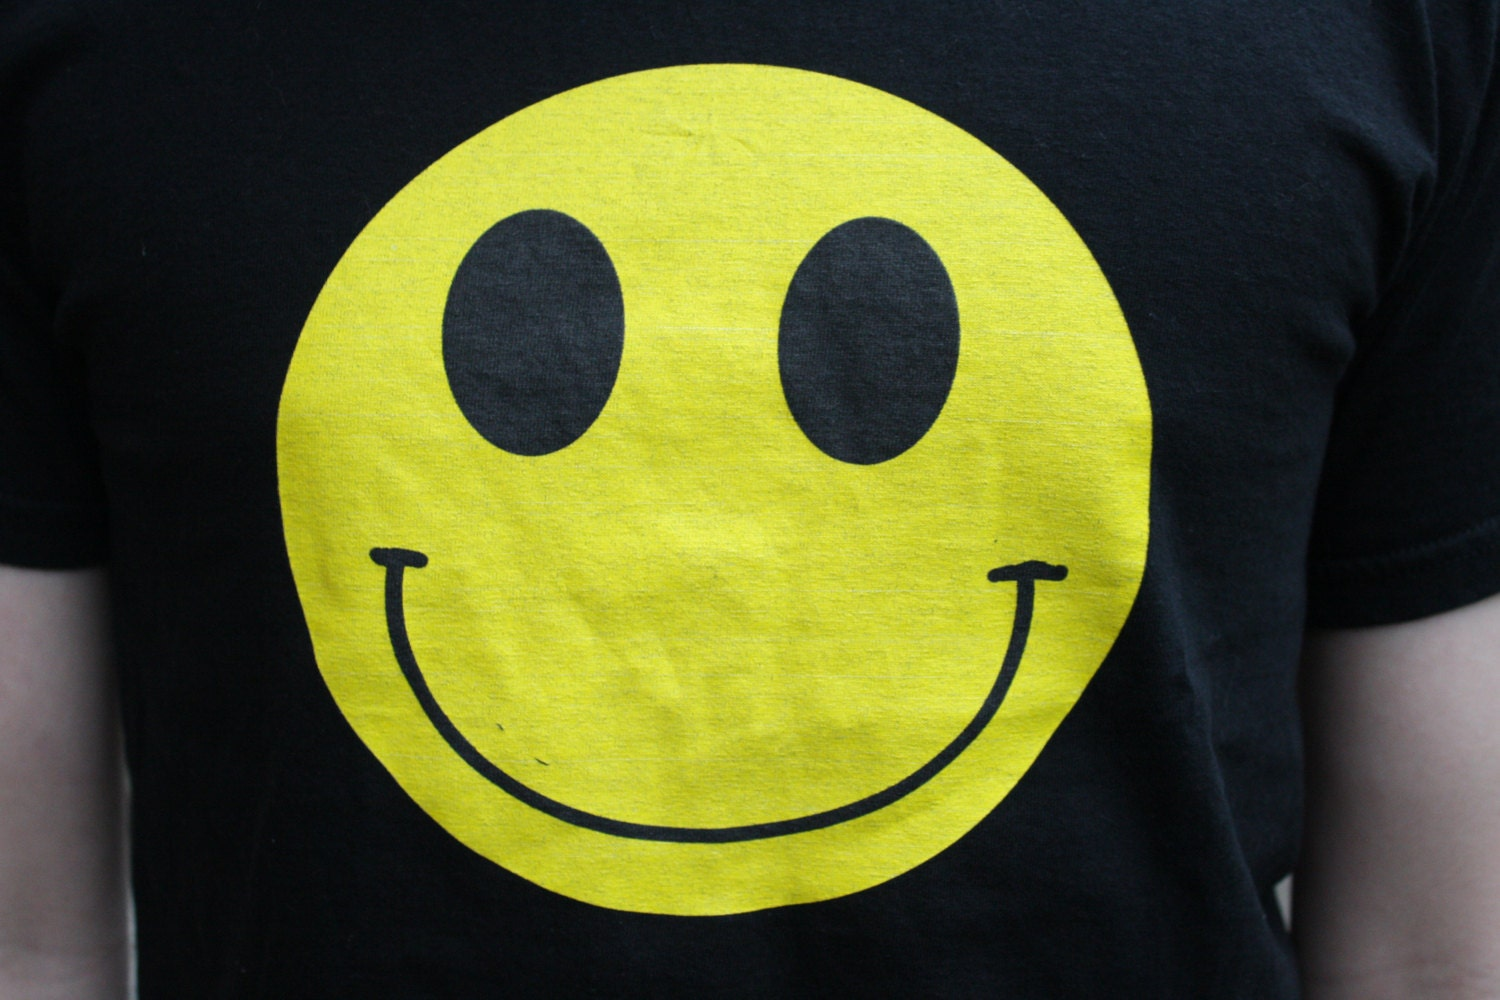 Dazed And Confused Smiley Face Dazed and confused smiley faceDazed And Confused Smiley Face